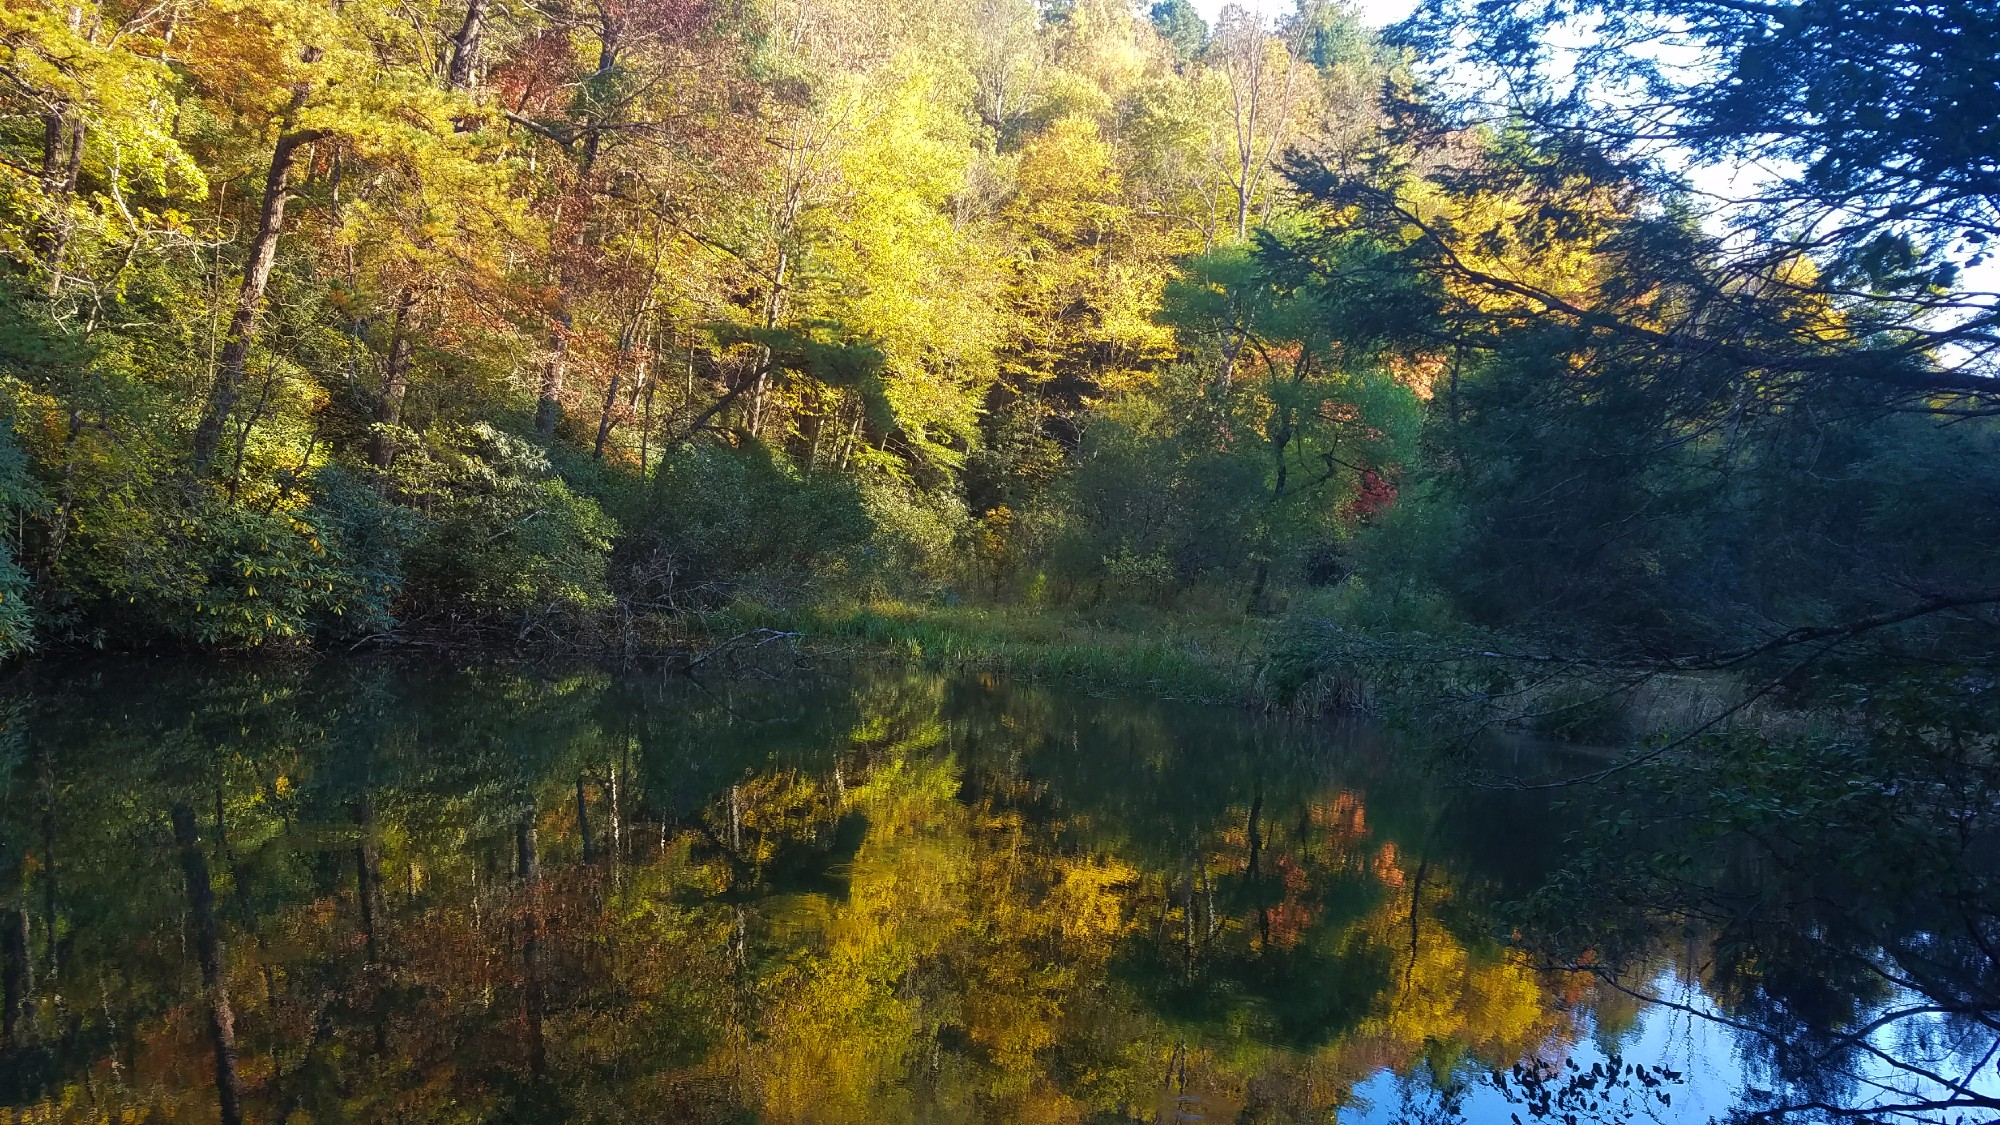 Trees reflecting fall colors in a pond in the woods